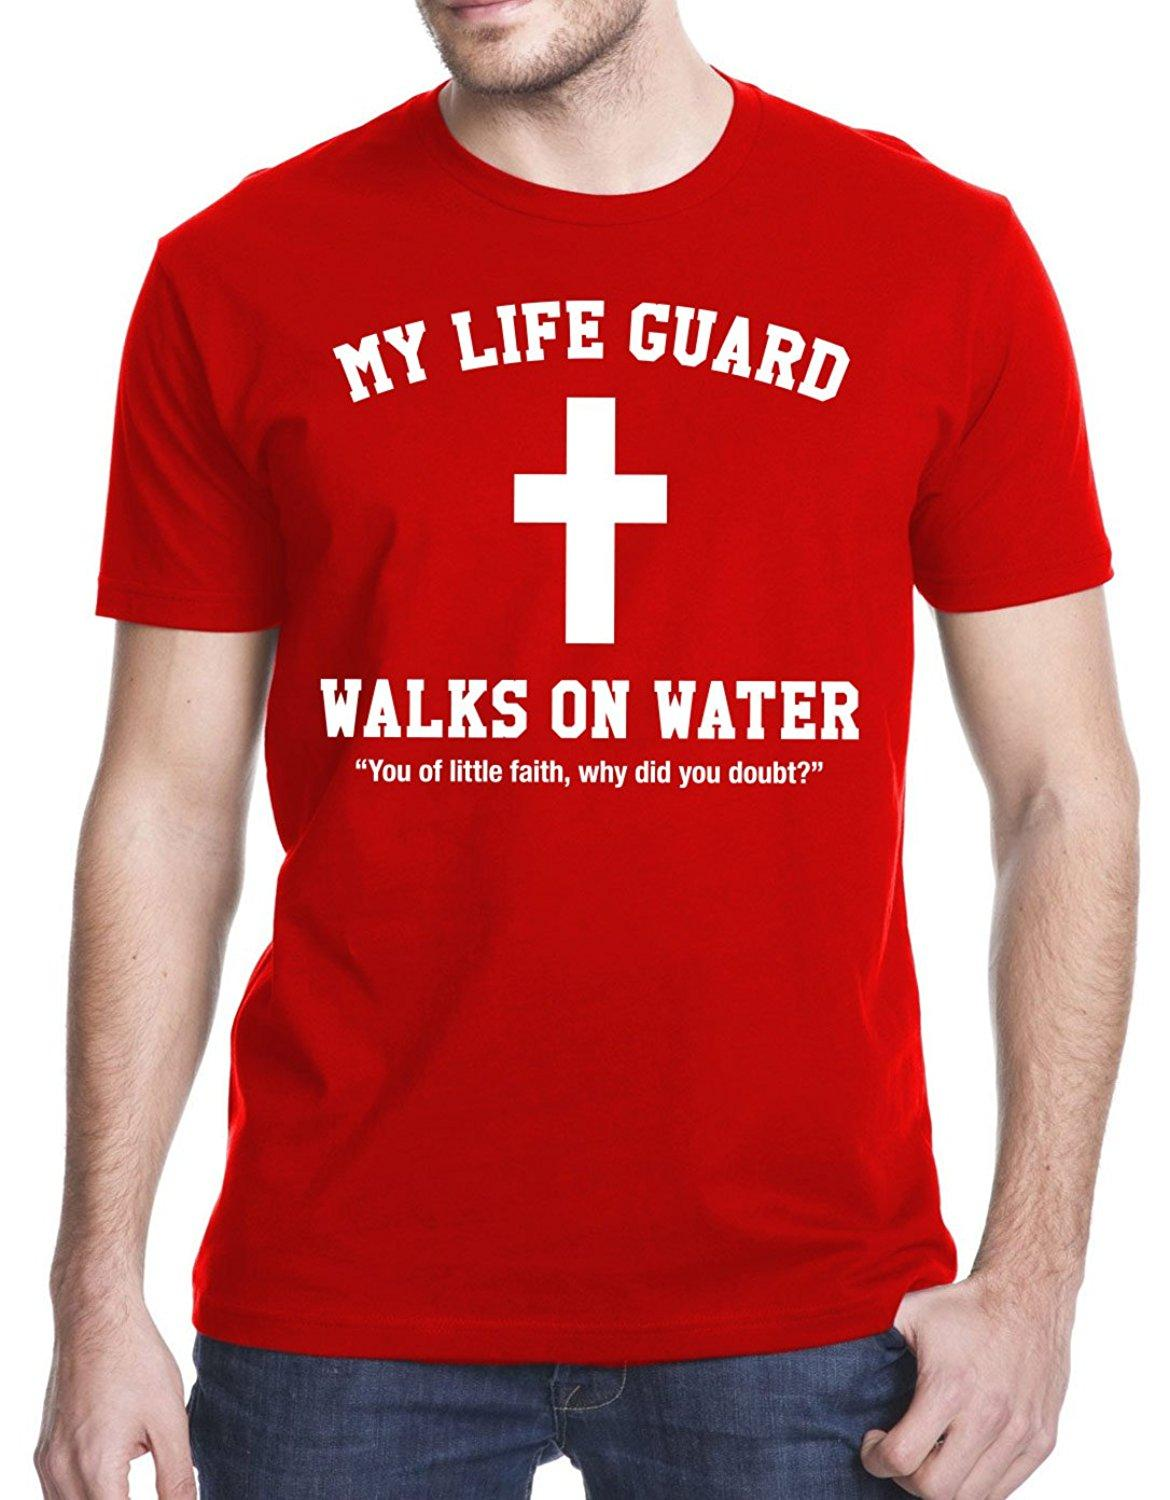 0f4571fa42a Wholesale Discount My Lifeguard Walks On Water Jesus Christian T Shirt  Online Shopping Tee Shirts Crazy T Shirts For Men From Lontimestore